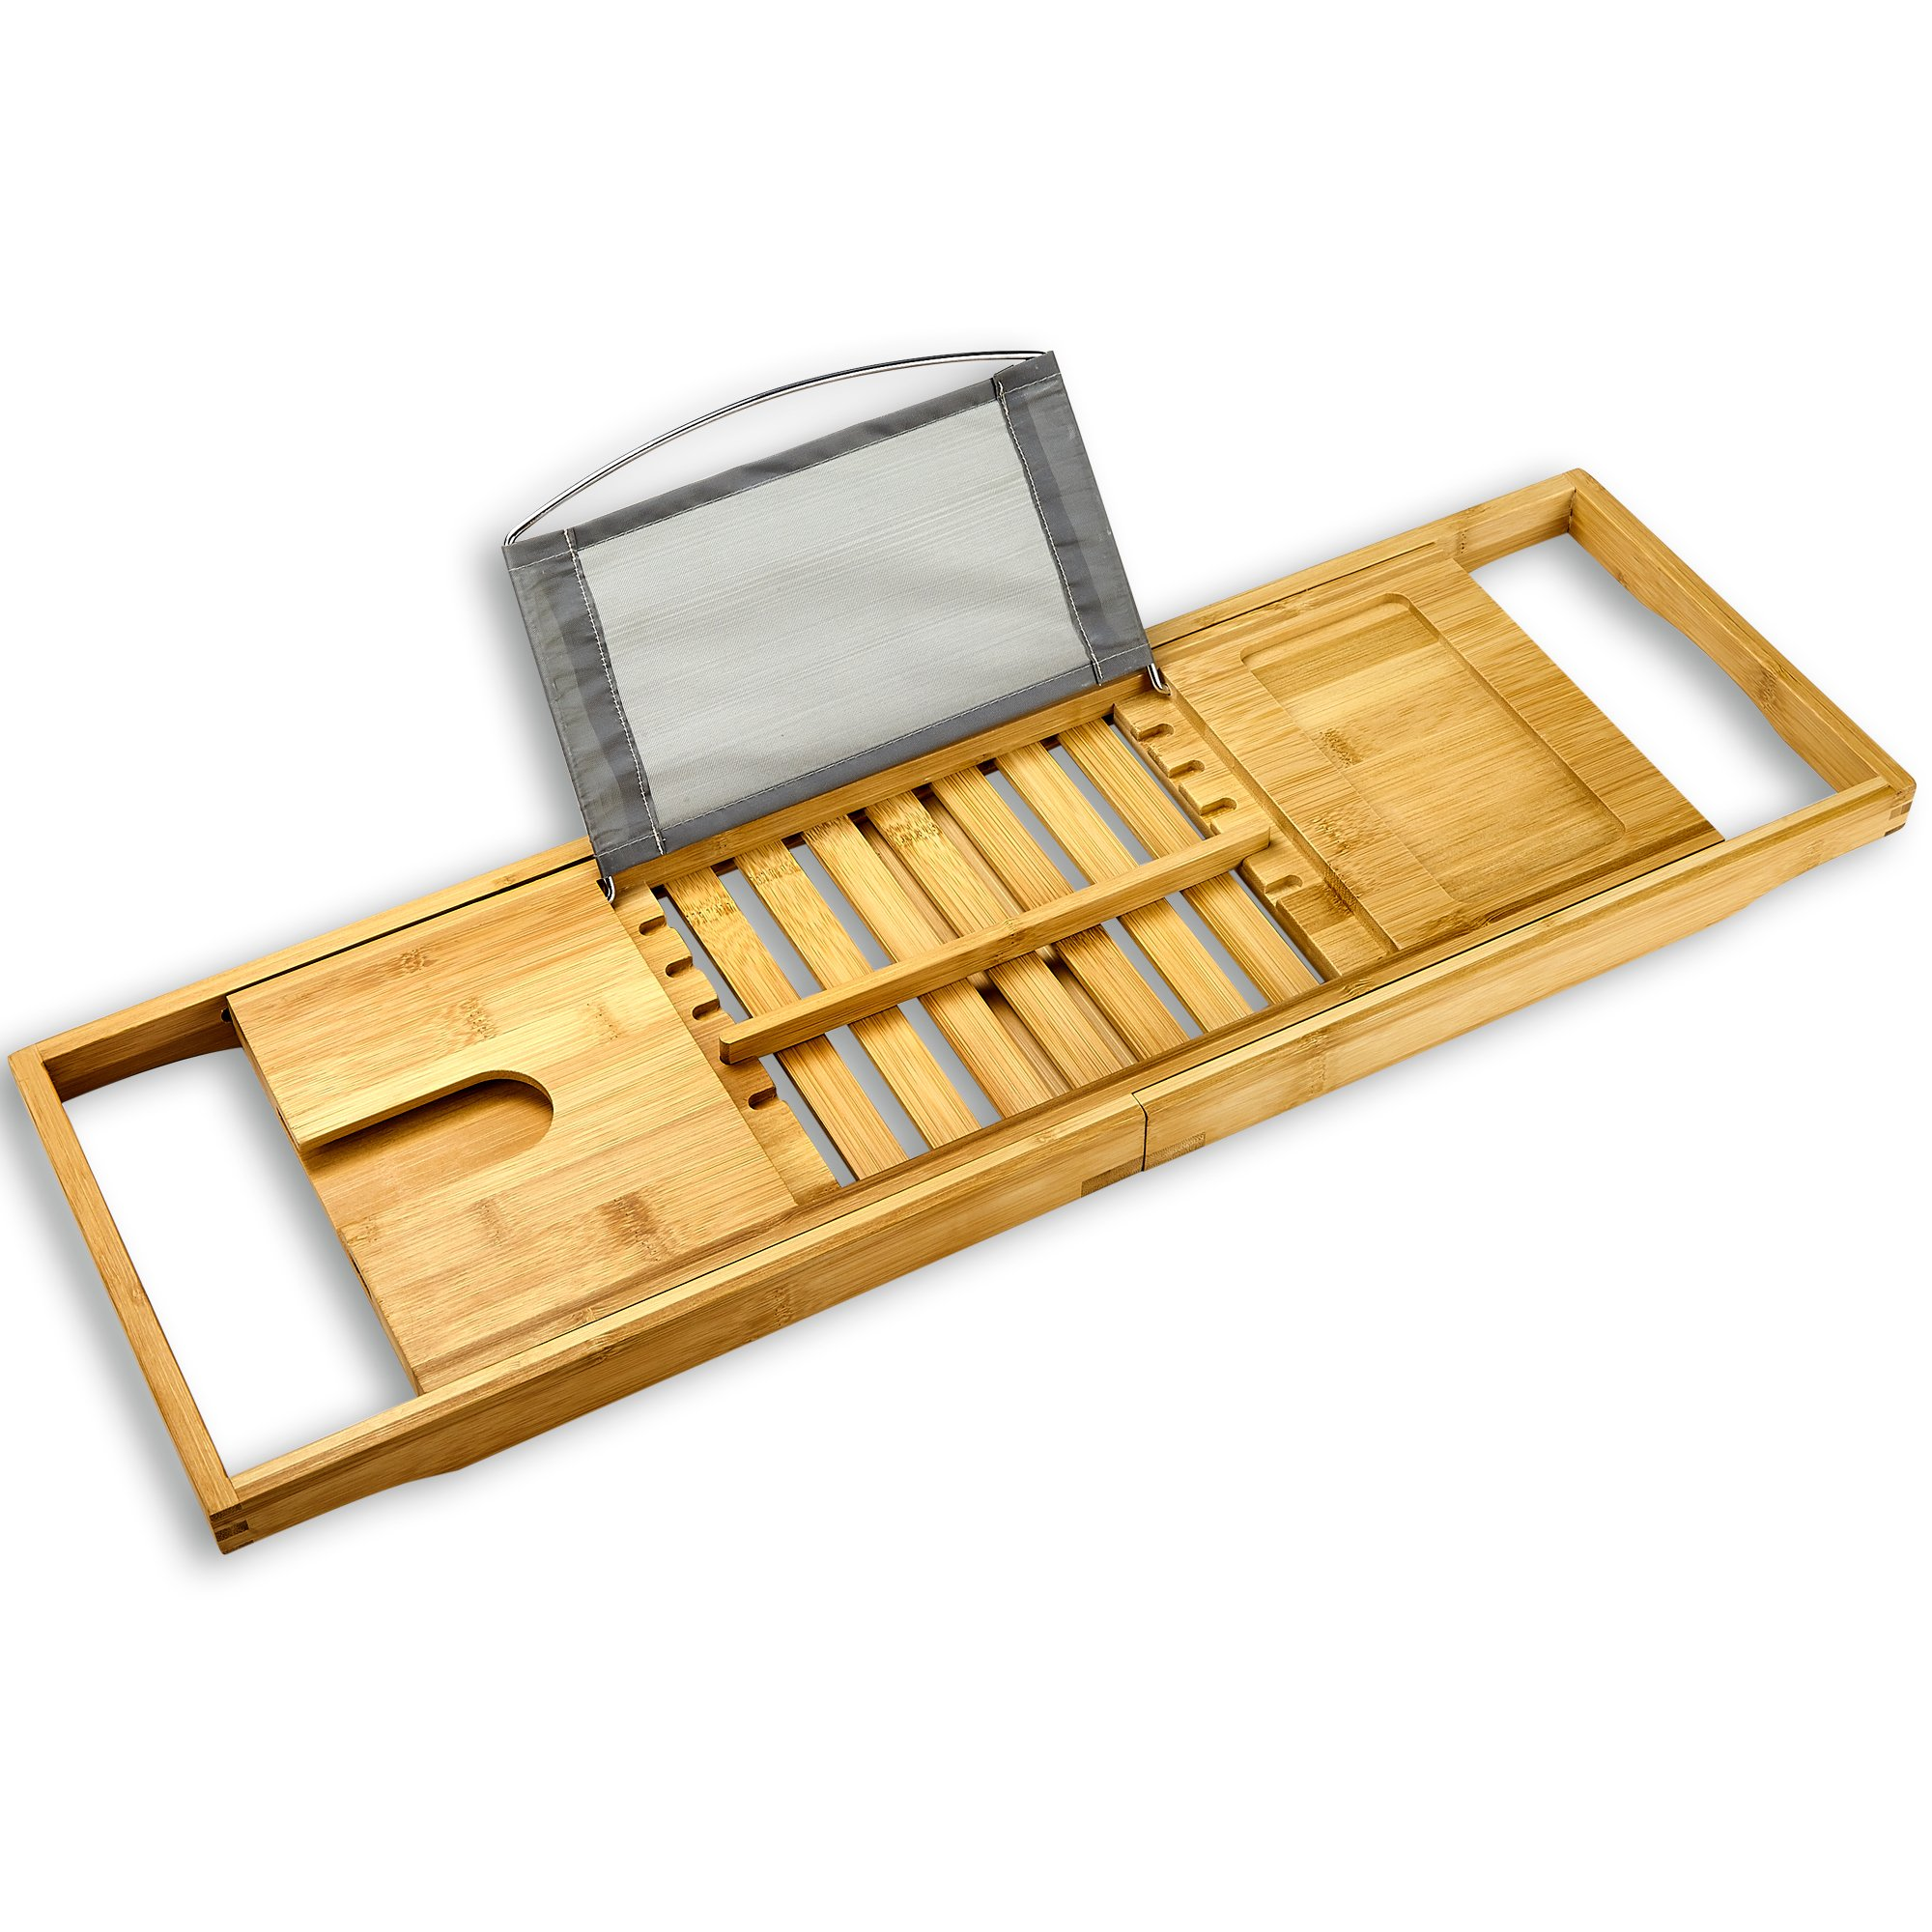 Tregini Luxury Bathtub Caddy - Extendable Bamboo Wood Bath Tray with Adjustable Book, iPad or Kindle Reading Rack - Wine Glass Holder - Cellphone or Tablet Slot by Tregini (Image #7)